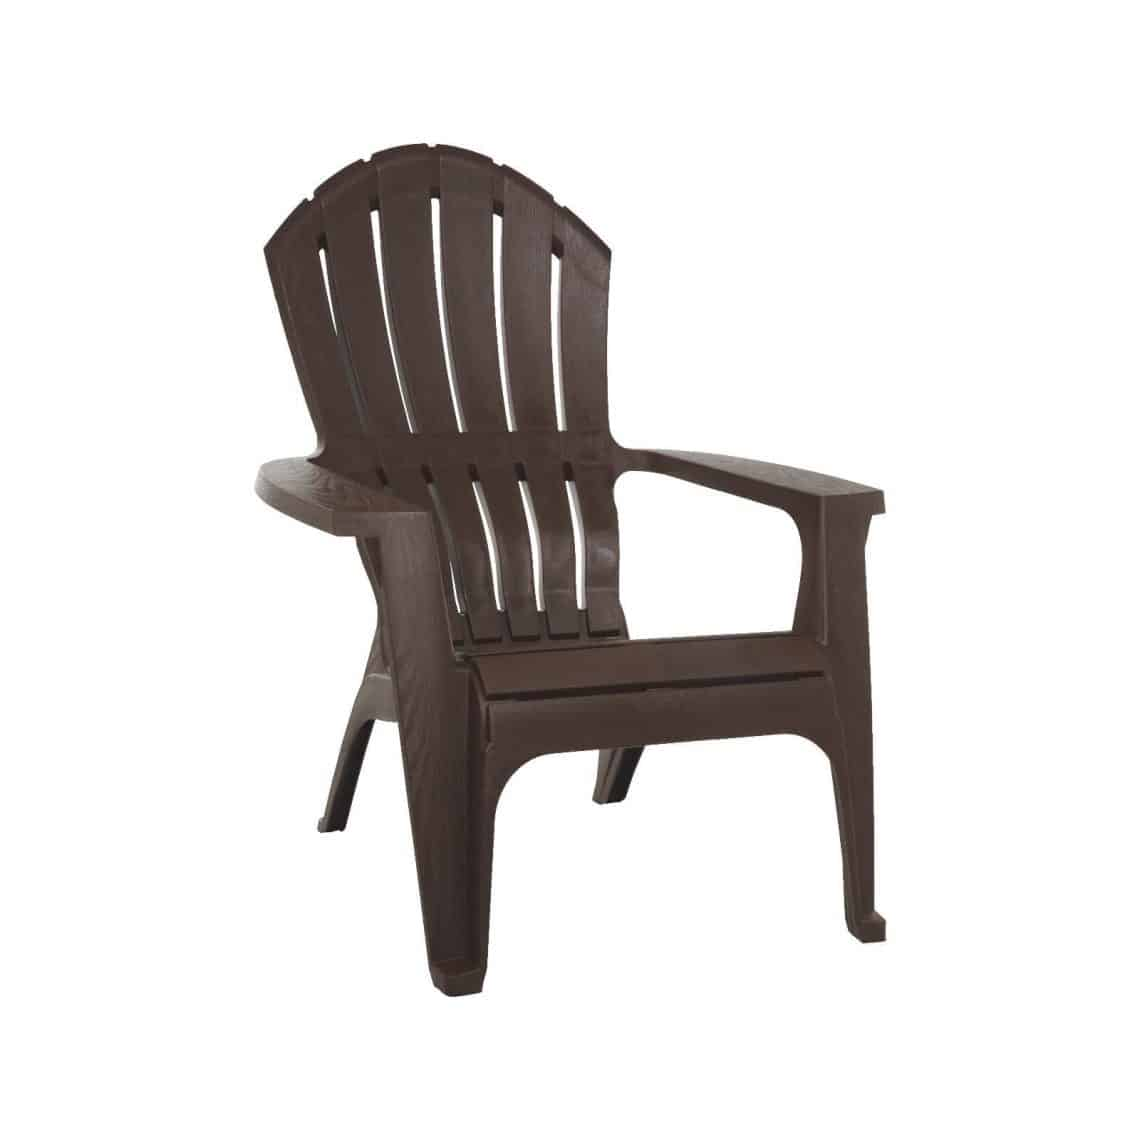 Adams Resin Adirondack Chairs Adams Realcomfort Adirondack Resin Chair 10 Colors To